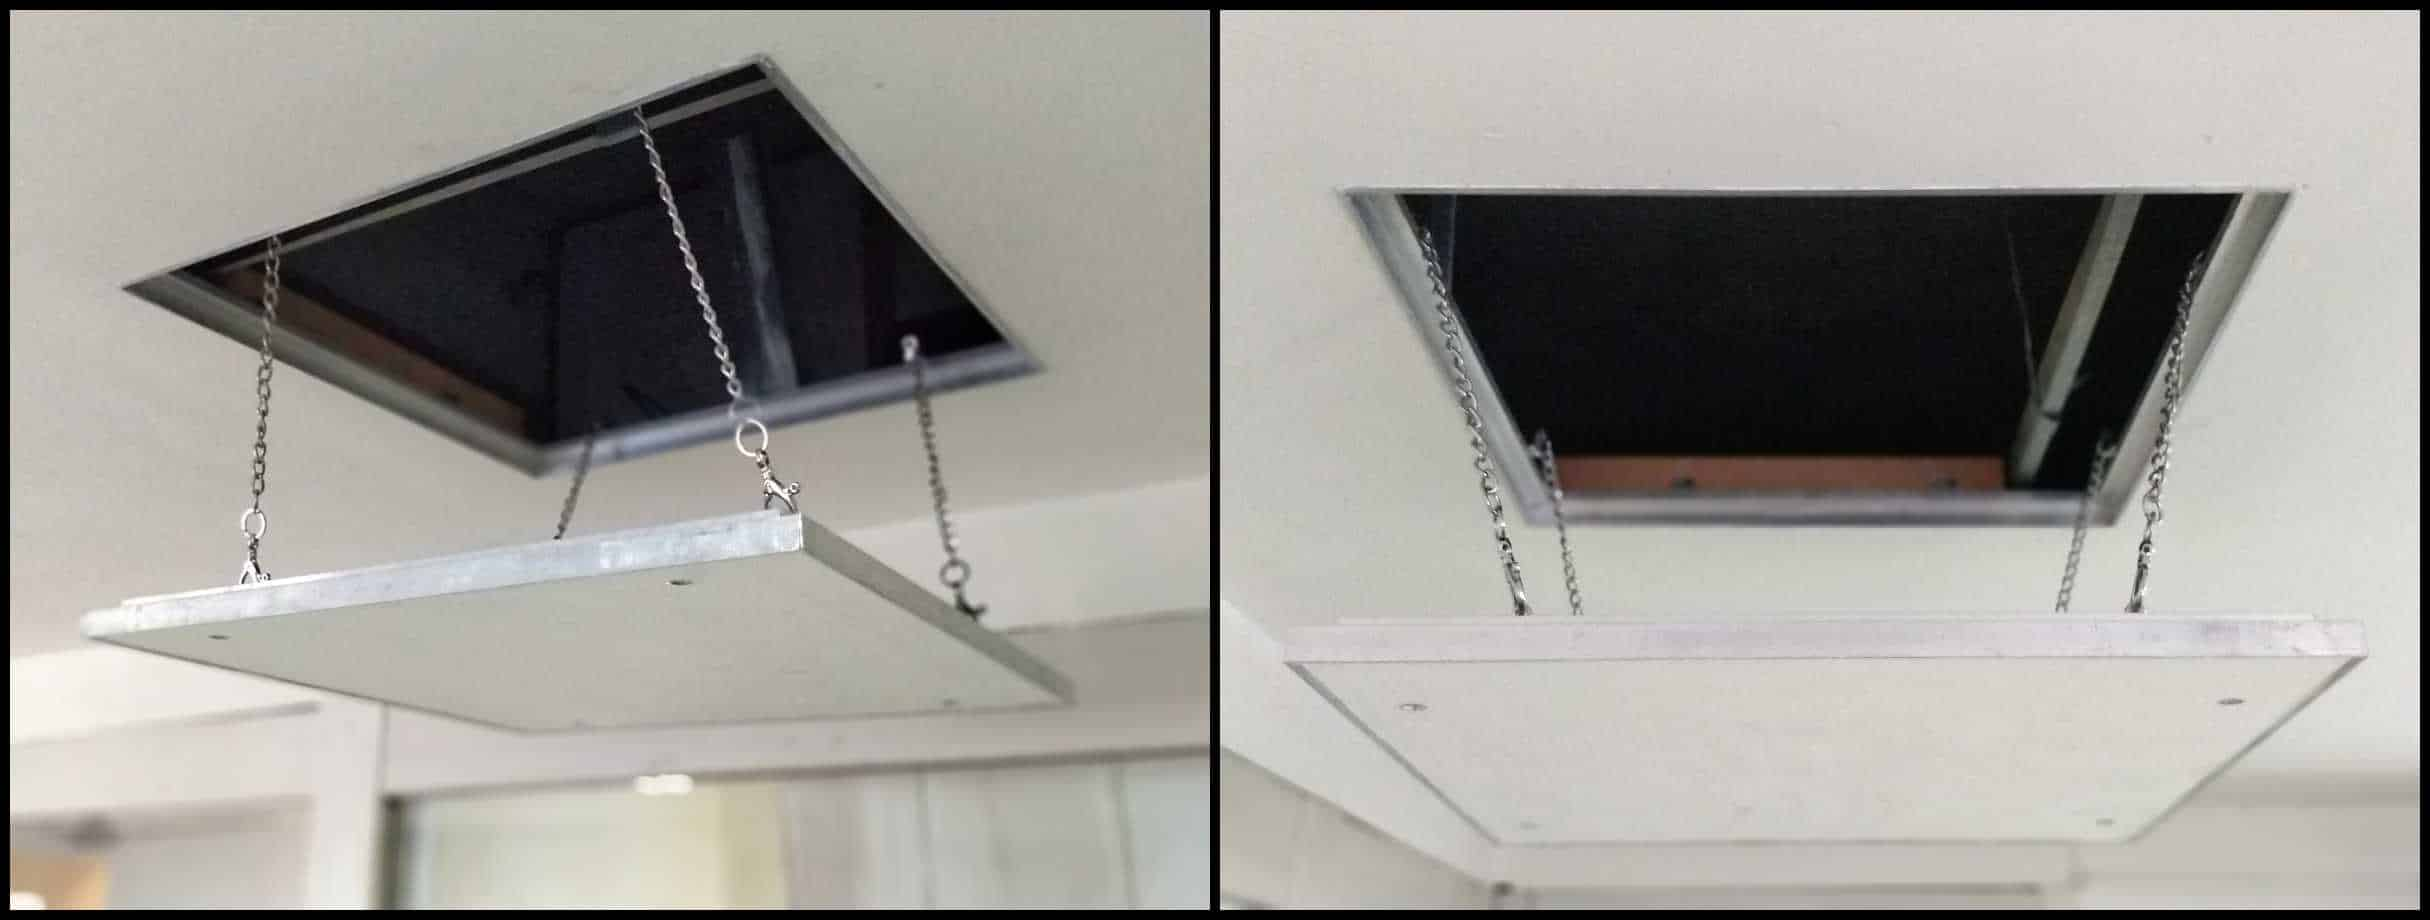 And Helps In Transferring A Load Of Trapdoor Directly To The Roof Rather Than Putting On Ceiling Open Condition